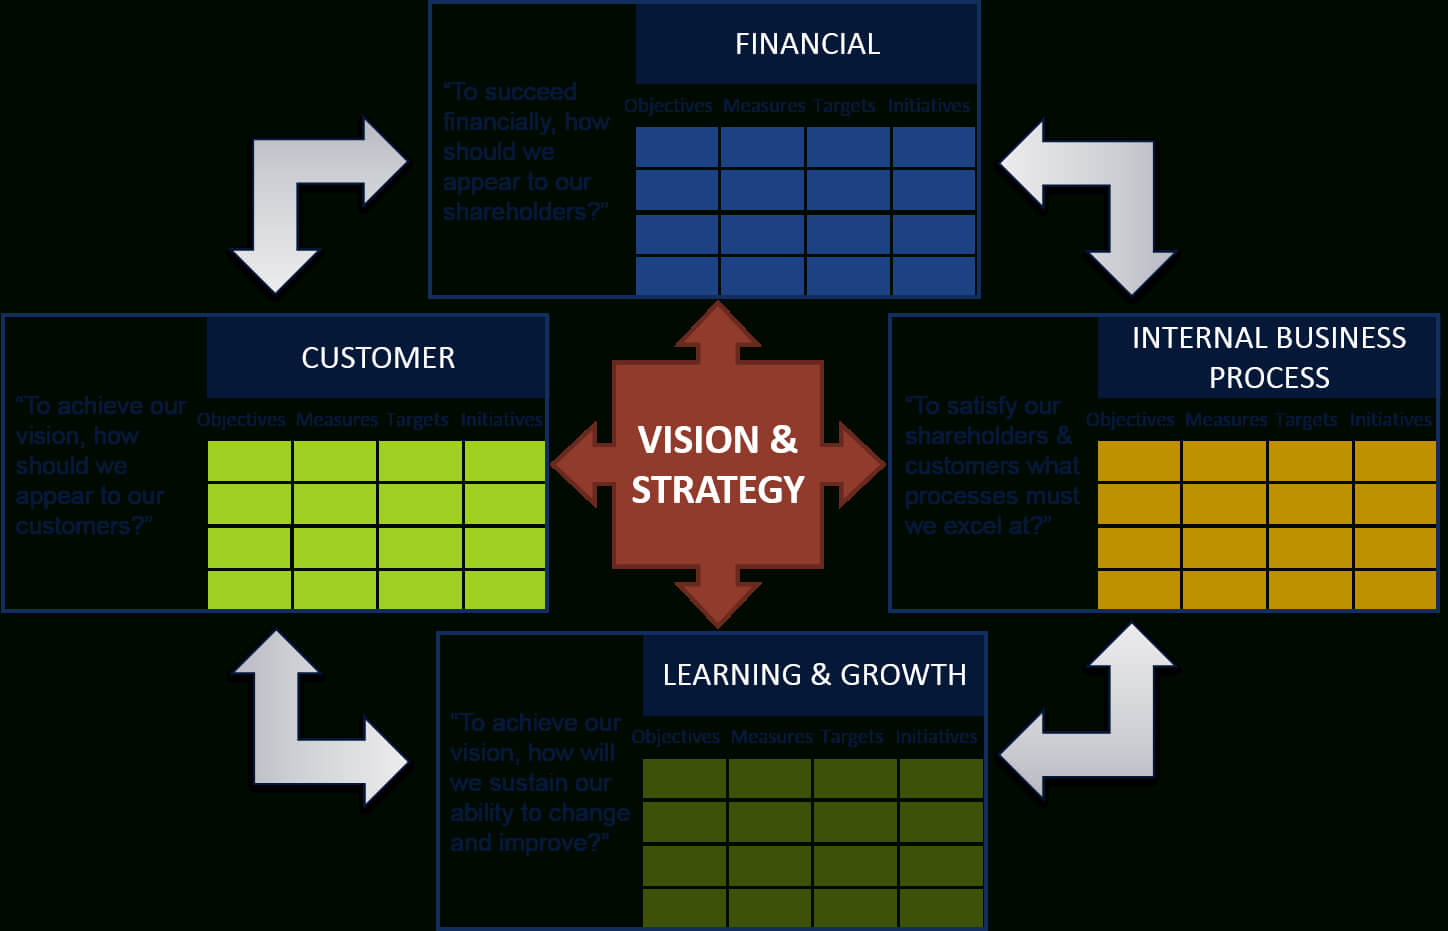 Building A Strategic Mis For A Commercial Bank In Strategic Management Report Template